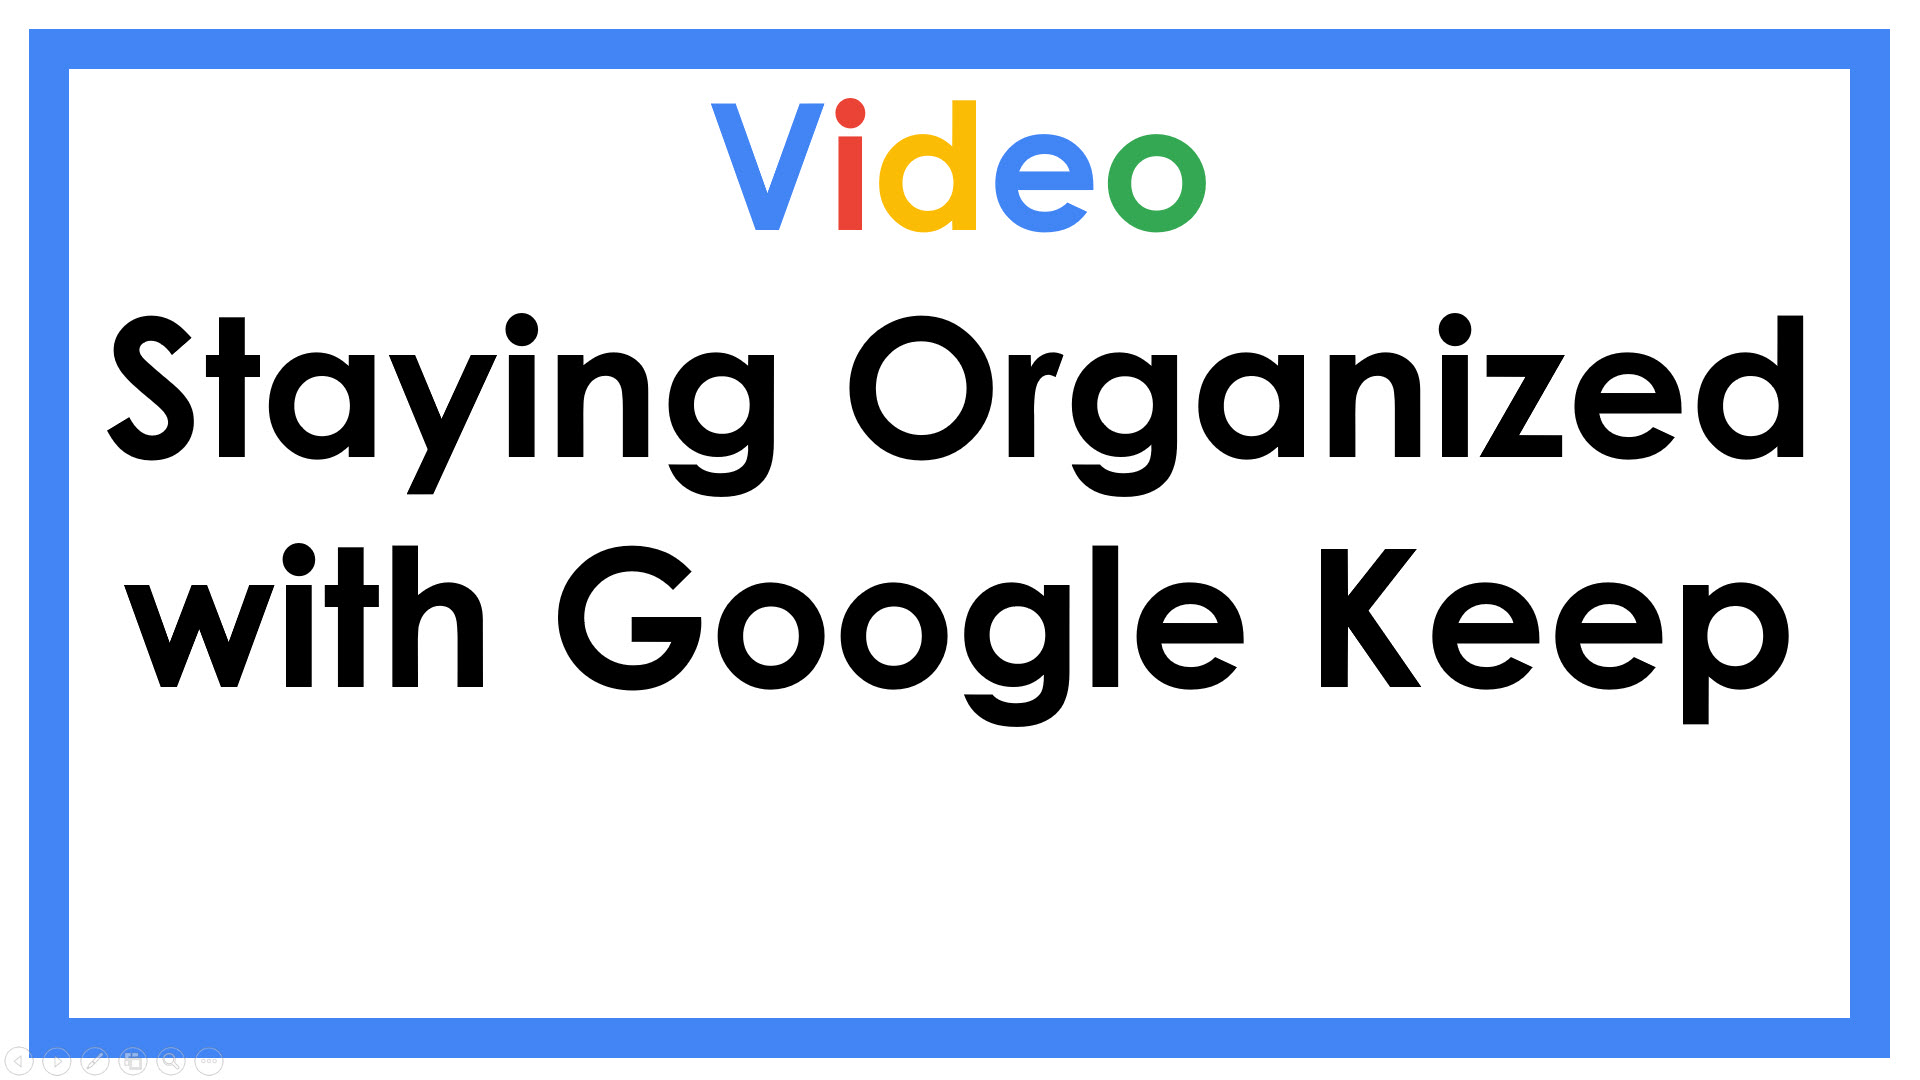 Staying Organized with Google Keep